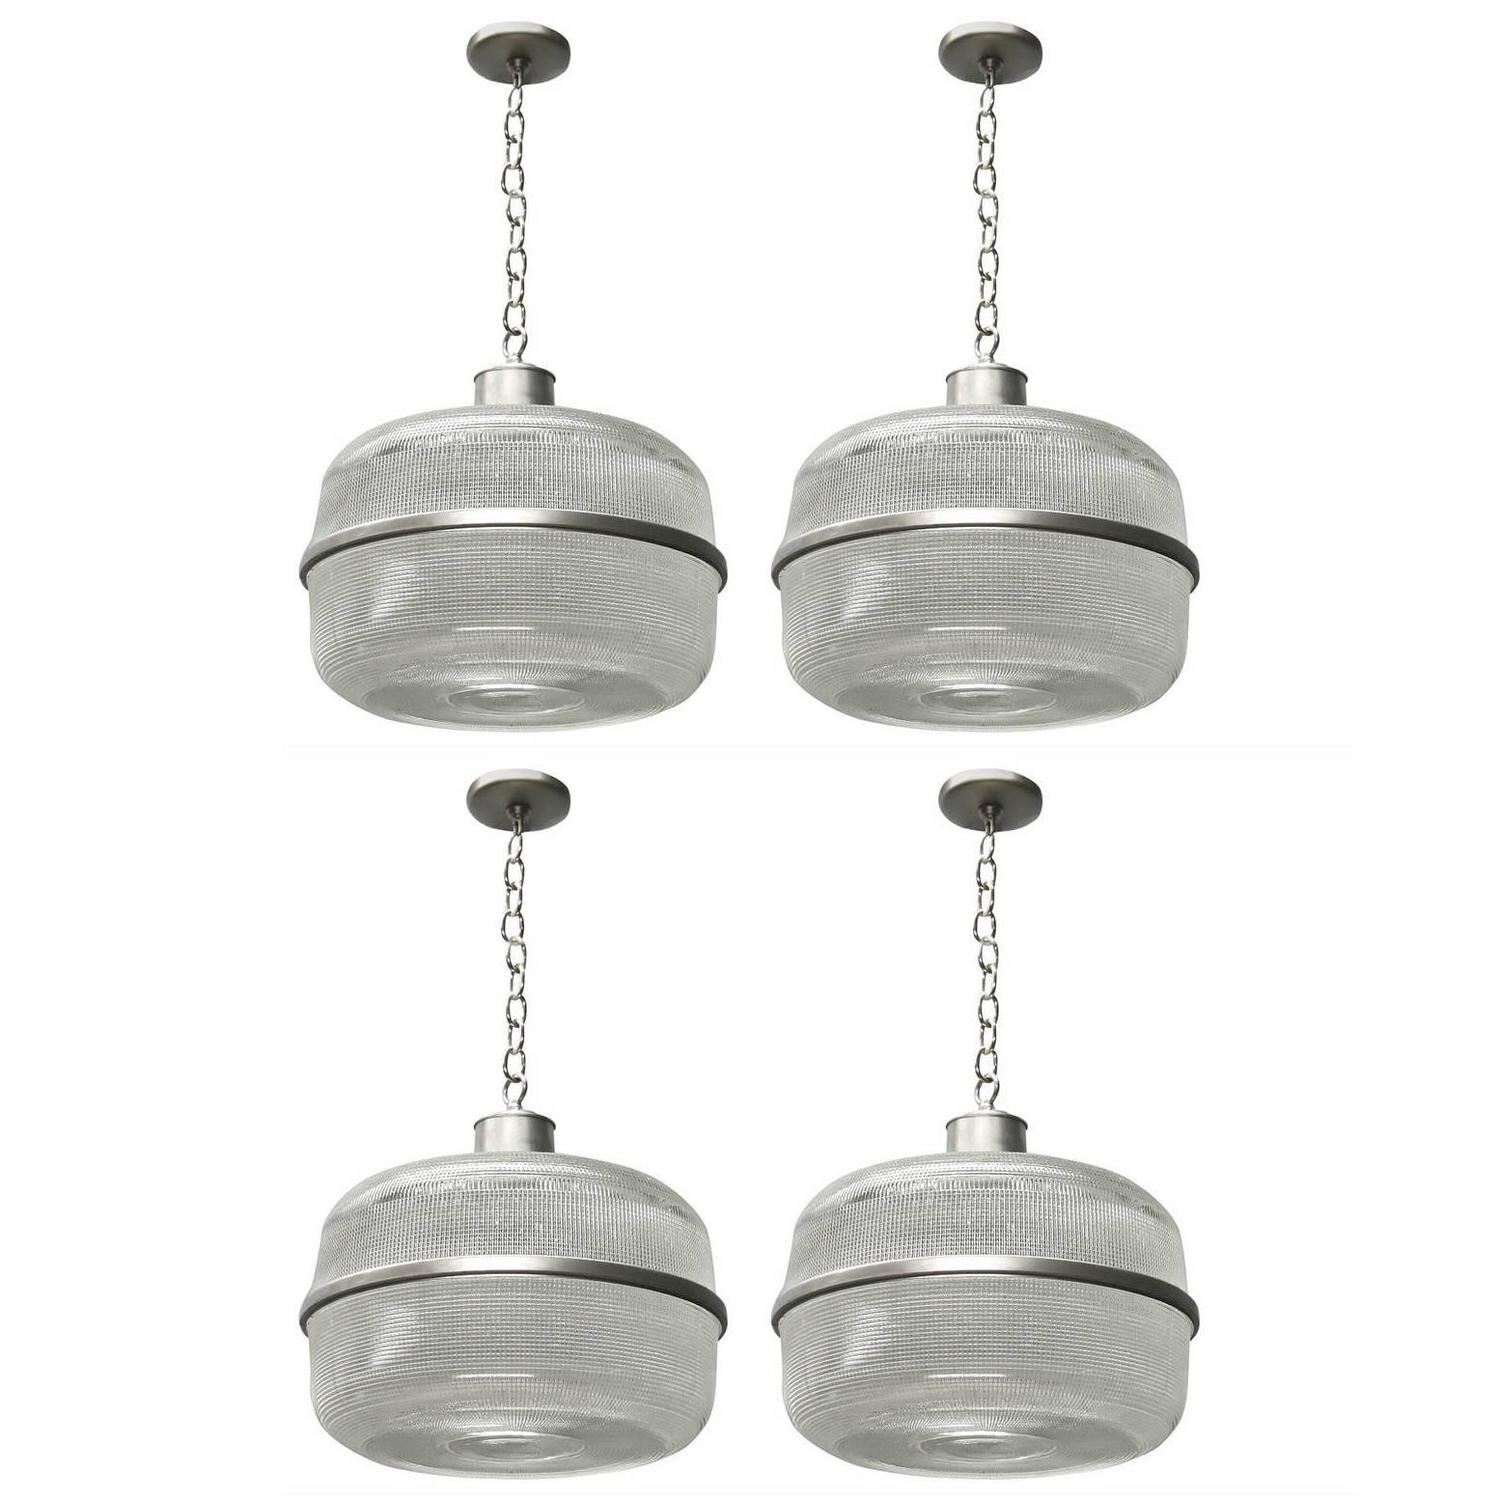 Four Ceiling Fixture in Holophane Glass Circa 1940 Made